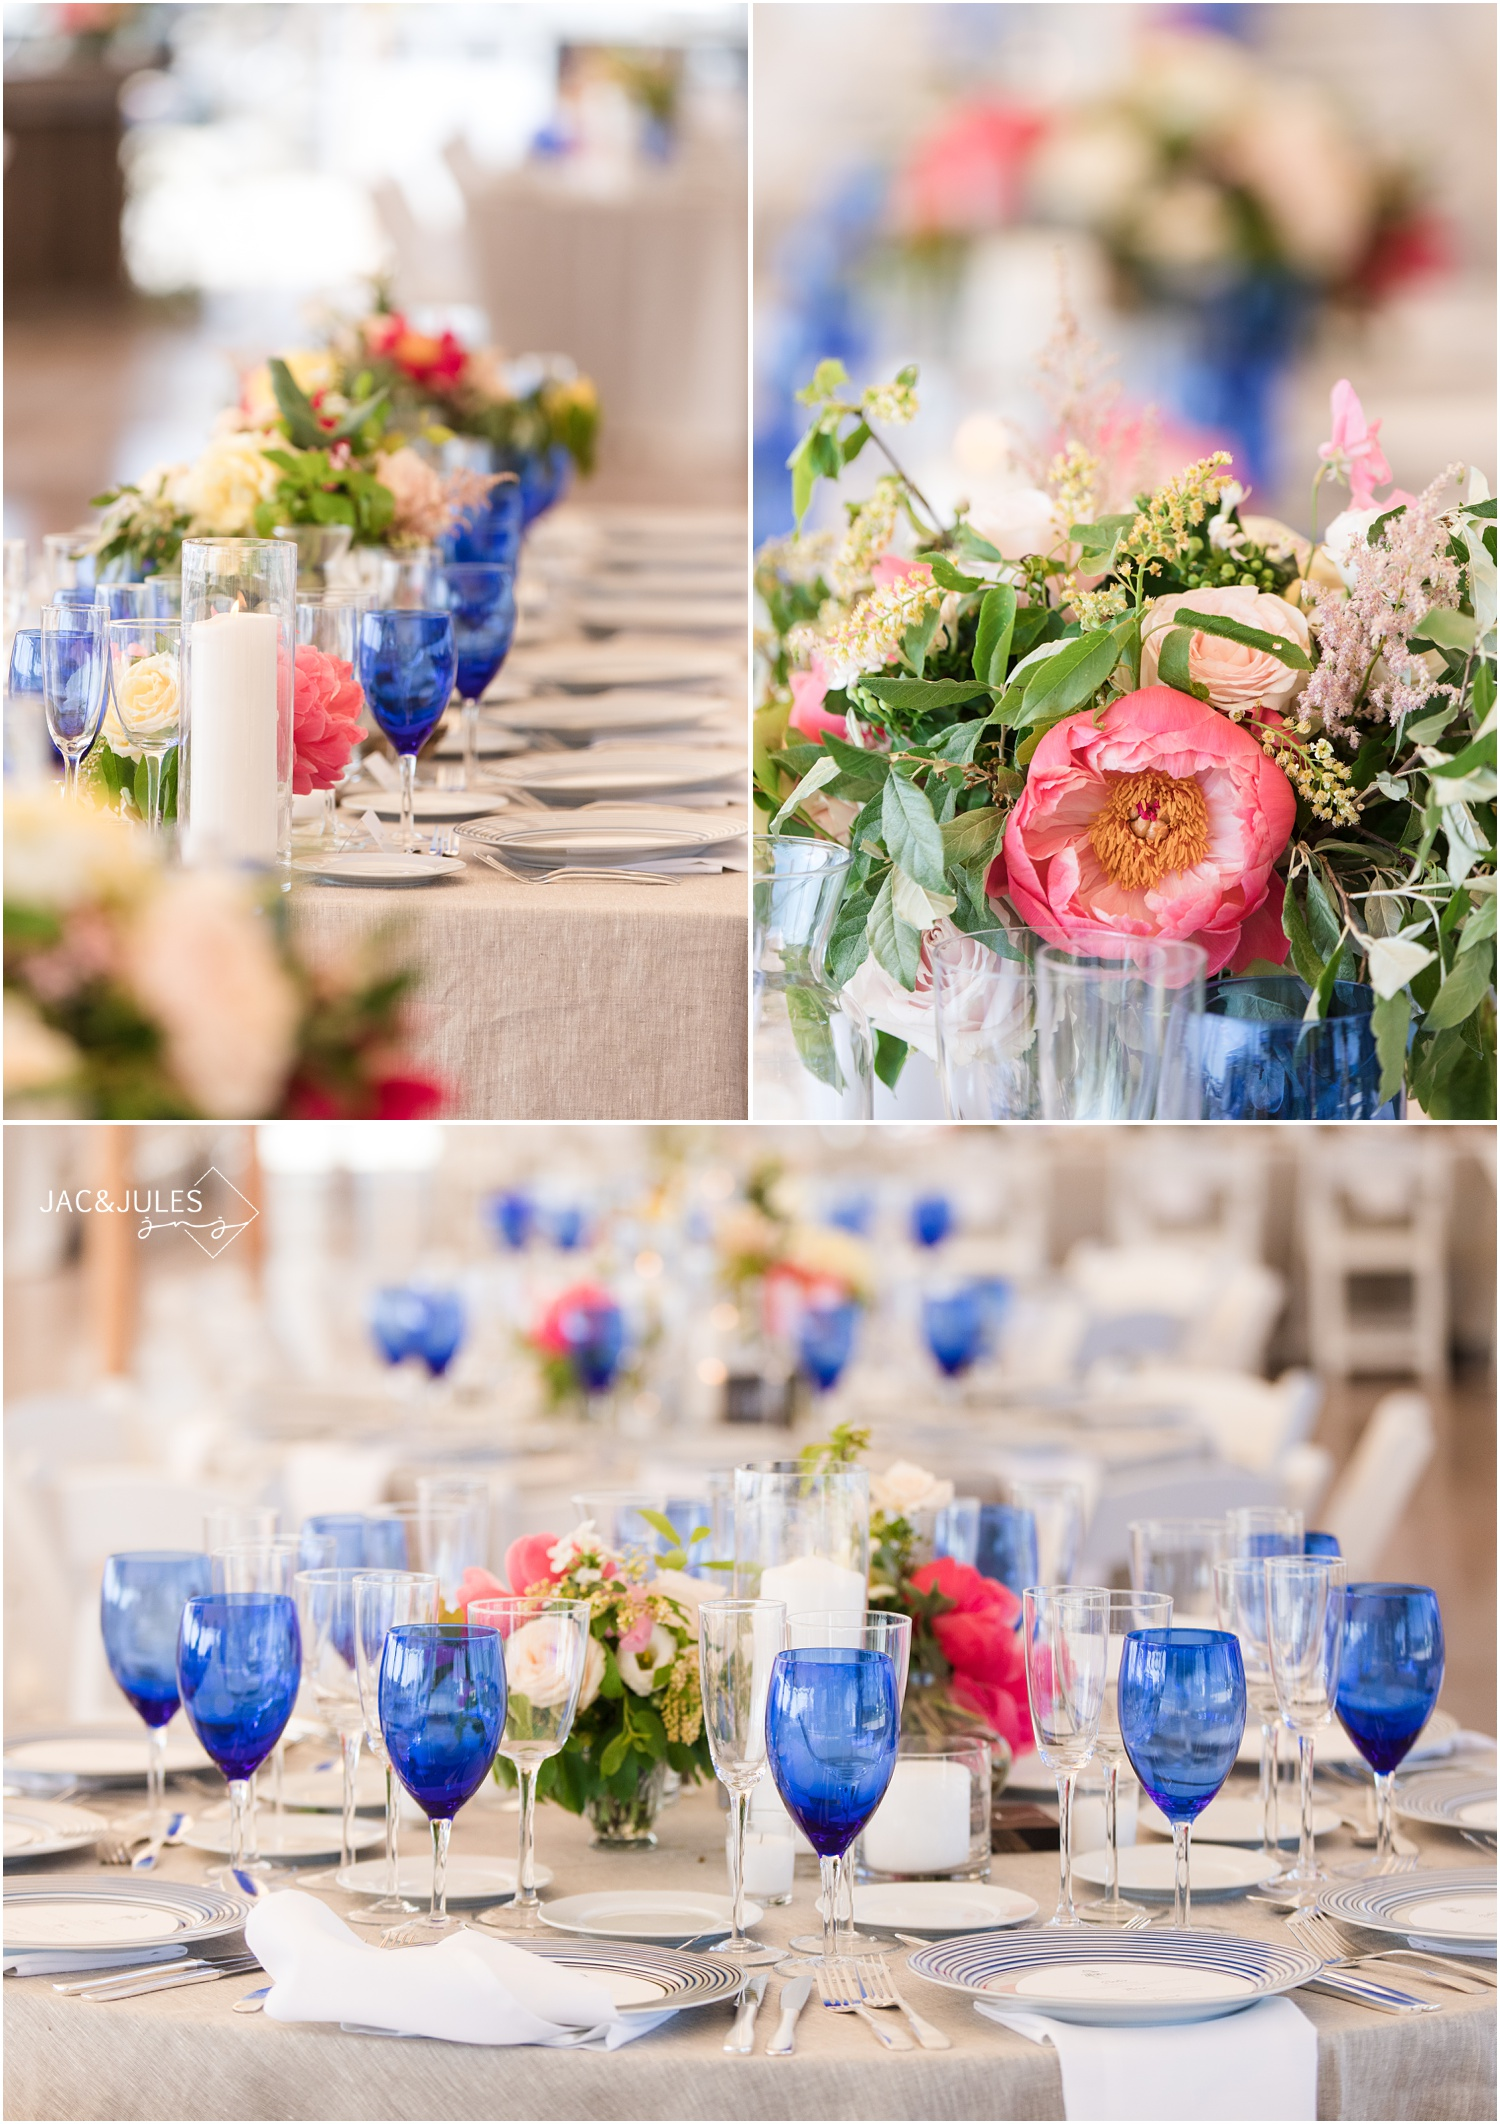 Photos of tented wedding reception decor at Mantoloking Yacht Club by Faye & Renee and Social Life Events.